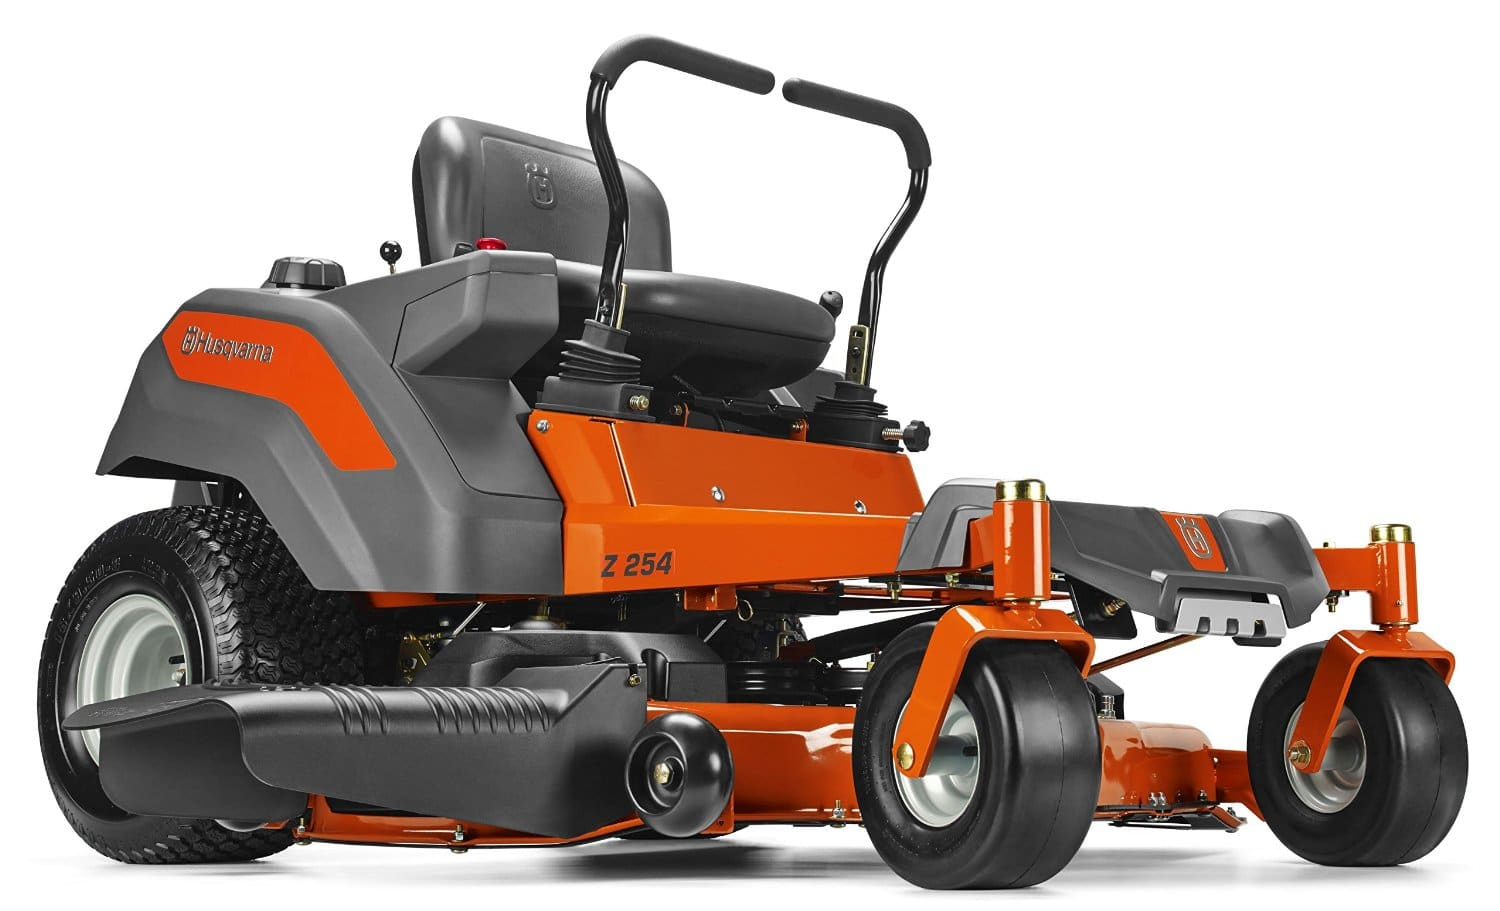 Bad Boy Mower is known for their almost fluorescent orange paint and their extravagant display booths at the trade shows. Tractor Supply Company carries two models that fits into the economy category, the 42 and 54 inch Bad Boy Magnum MZ.